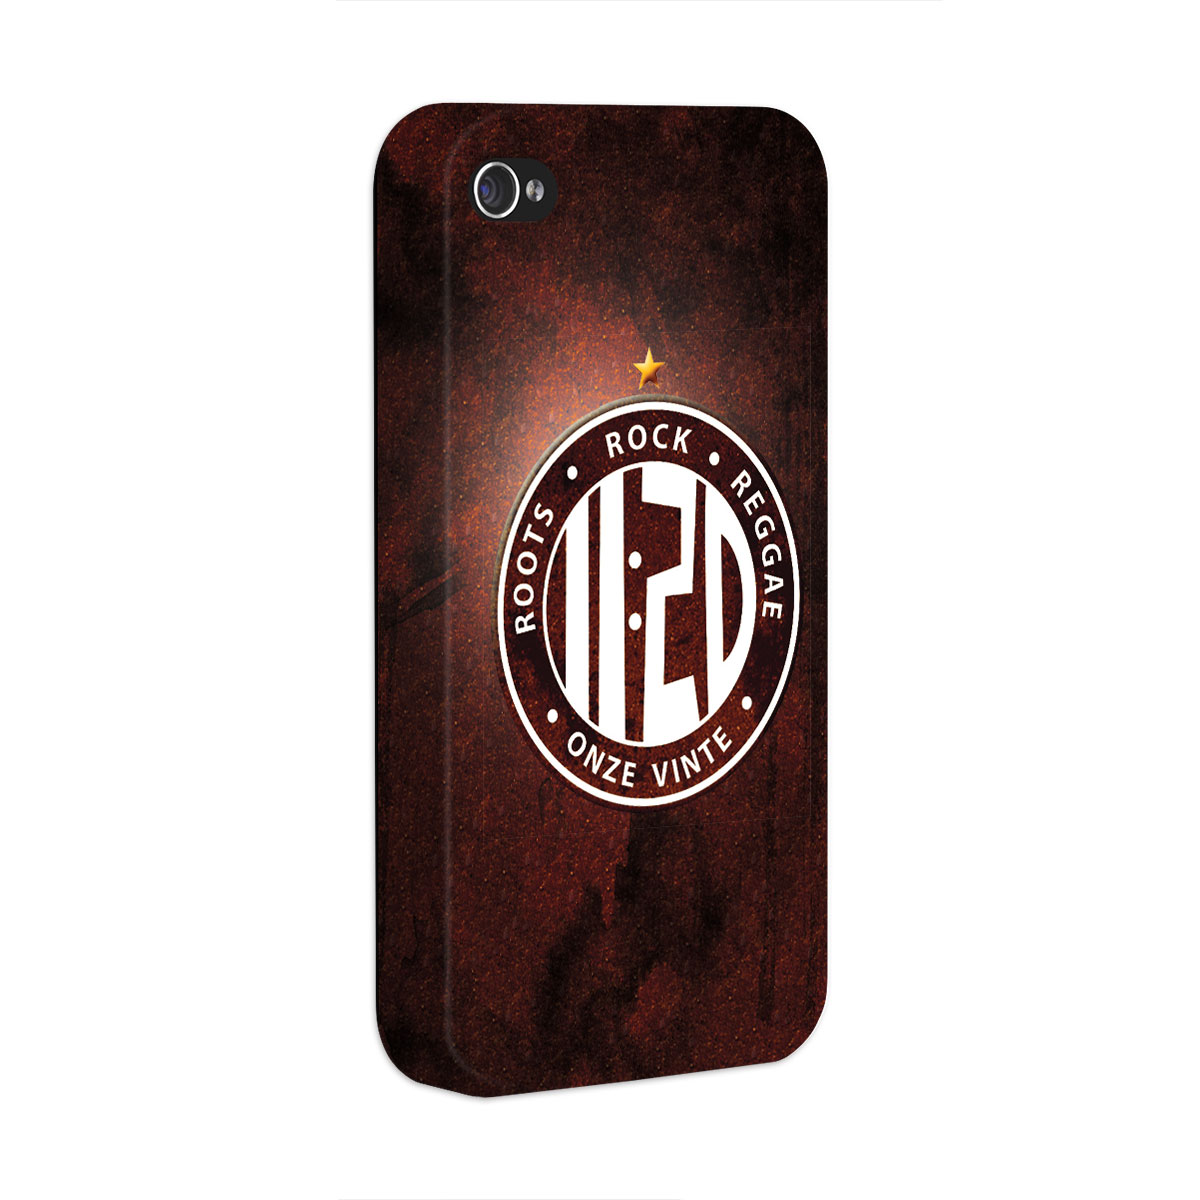 Capa de iPhone 4/4S Onze:20 Logo